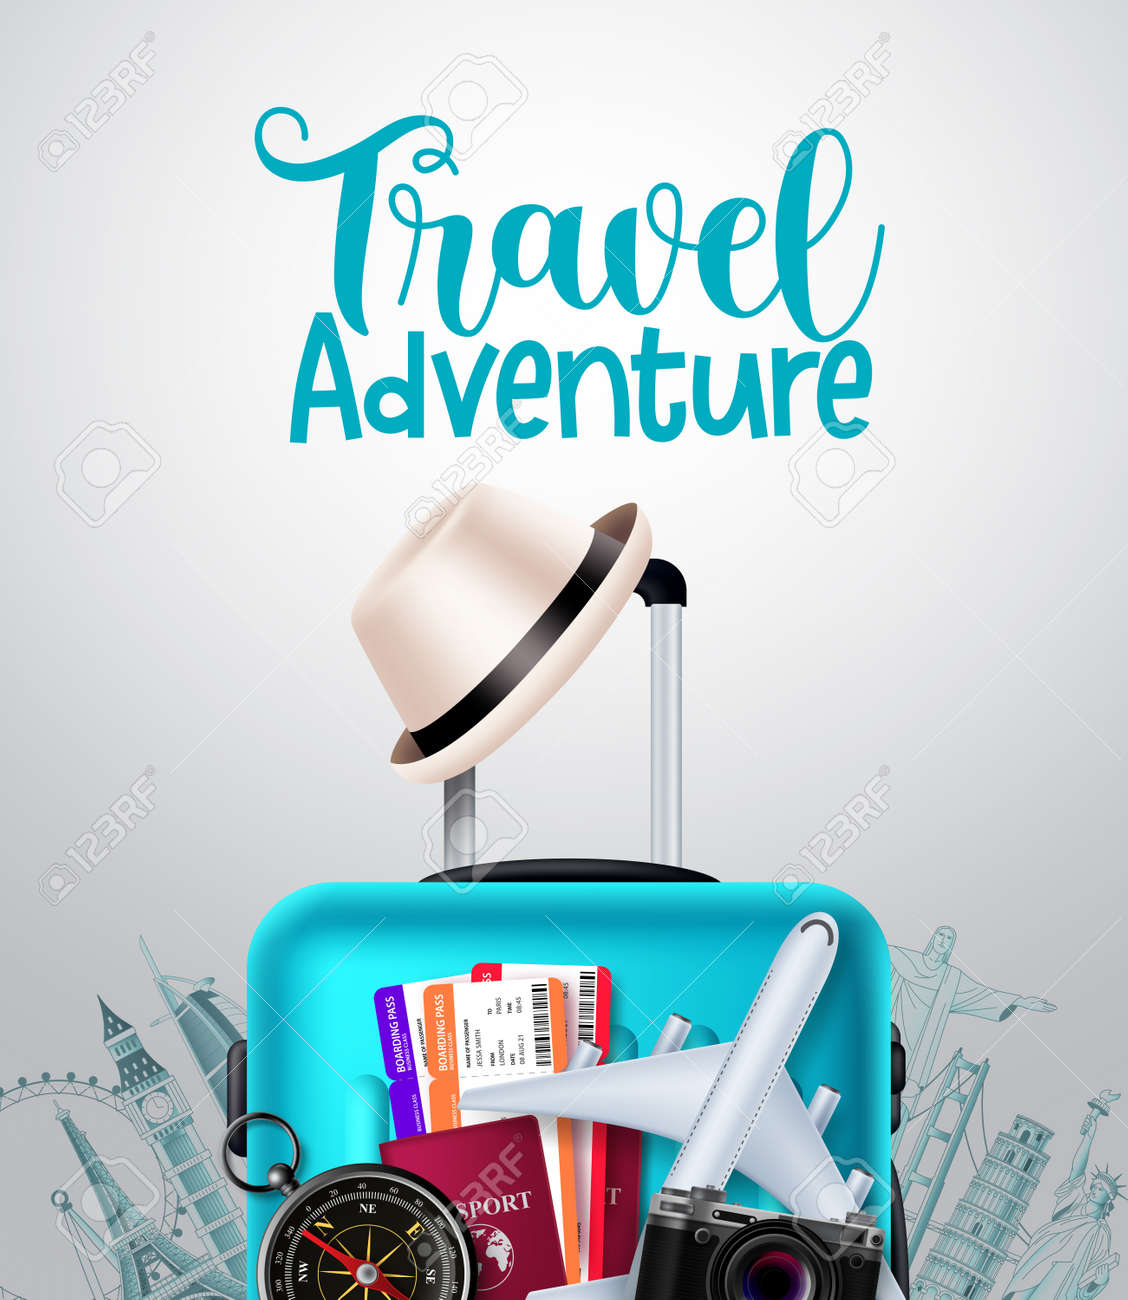 Travel adventure vector background design. Travel adventure text in empty space with traveler luggage, passport and ticket elements for trip and tour international vacation. Vector illustration - 170293716